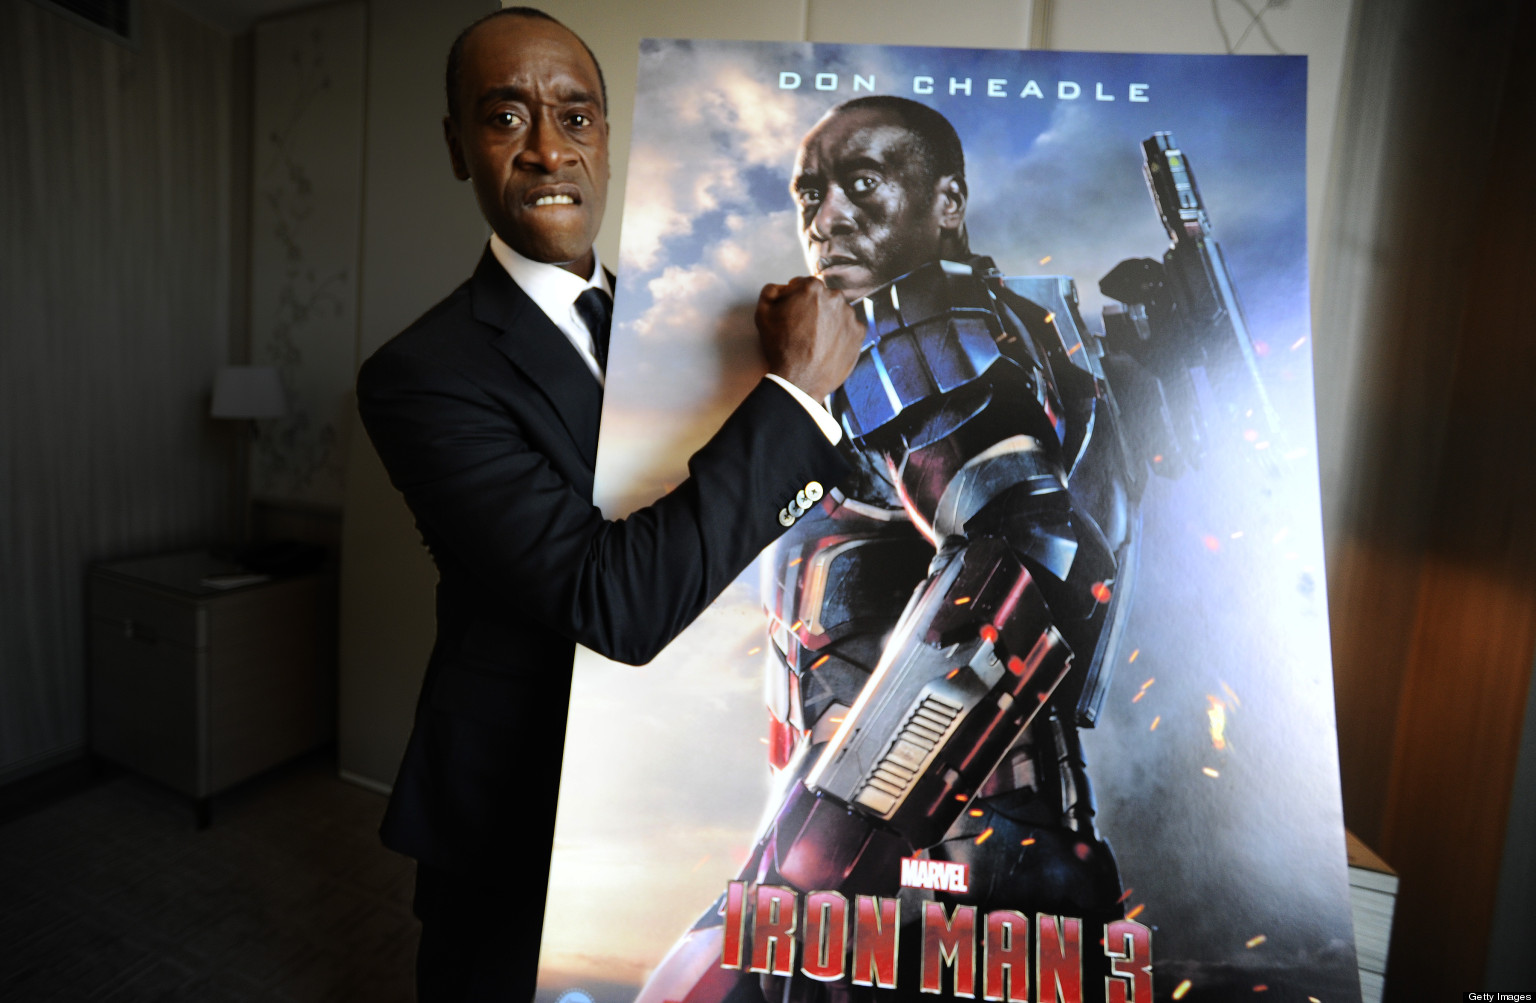 5 Burning Questions From Iron Man 3